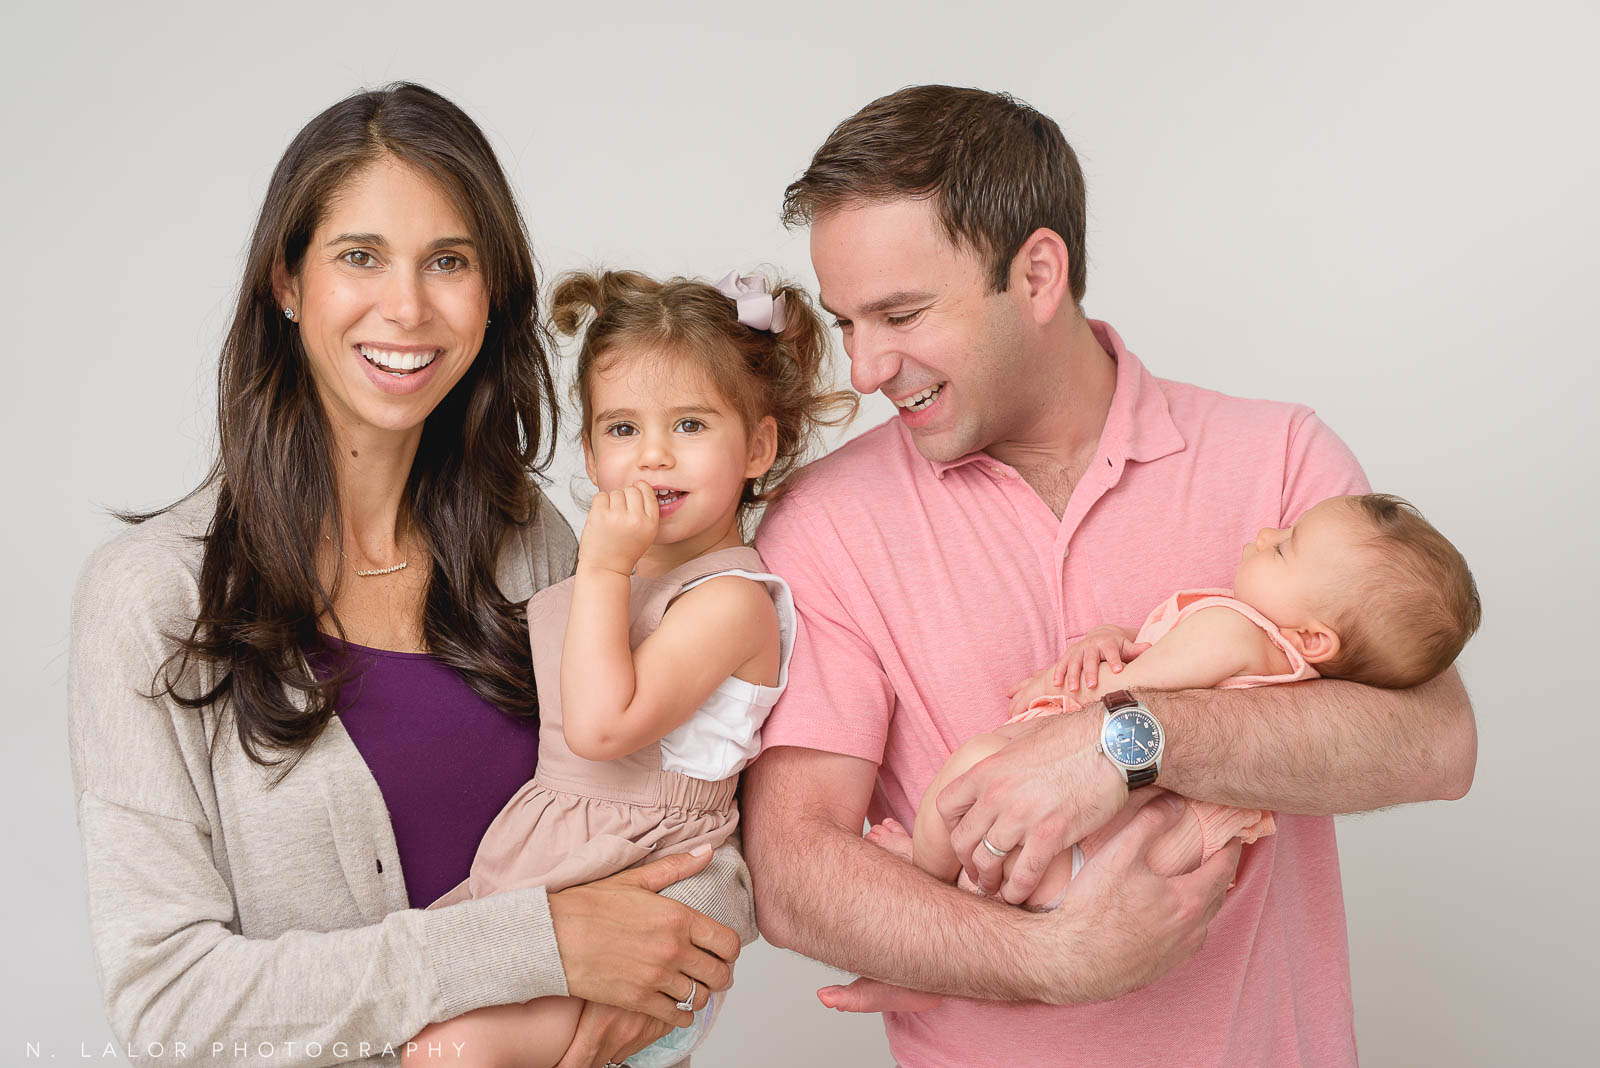 Image of a happy family with a toddler girl and new baby. Studio family portrait by N. Lalor Photography in Greenwich, CT.